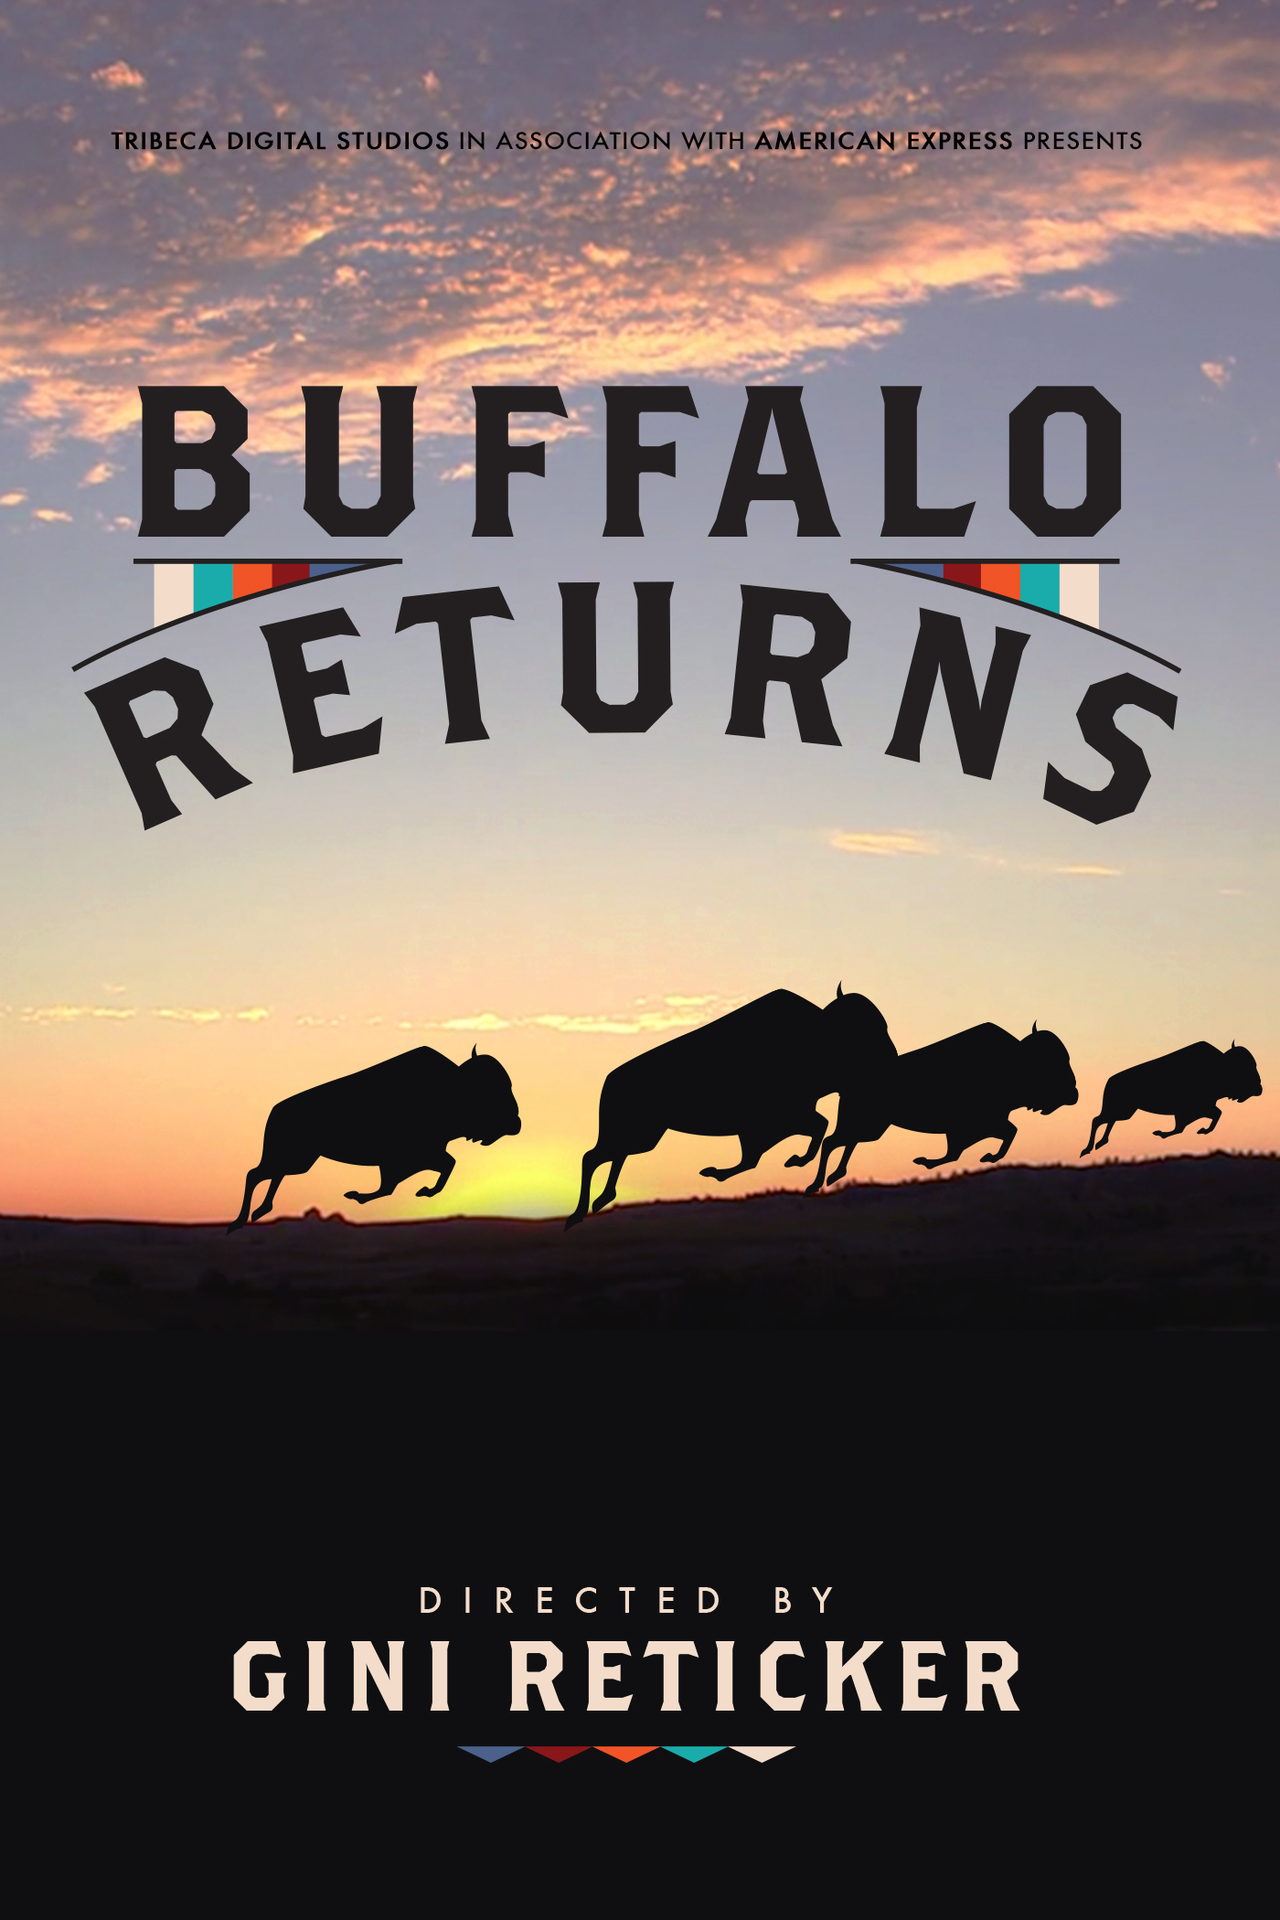 Official poster for BUFFALO RETURNS